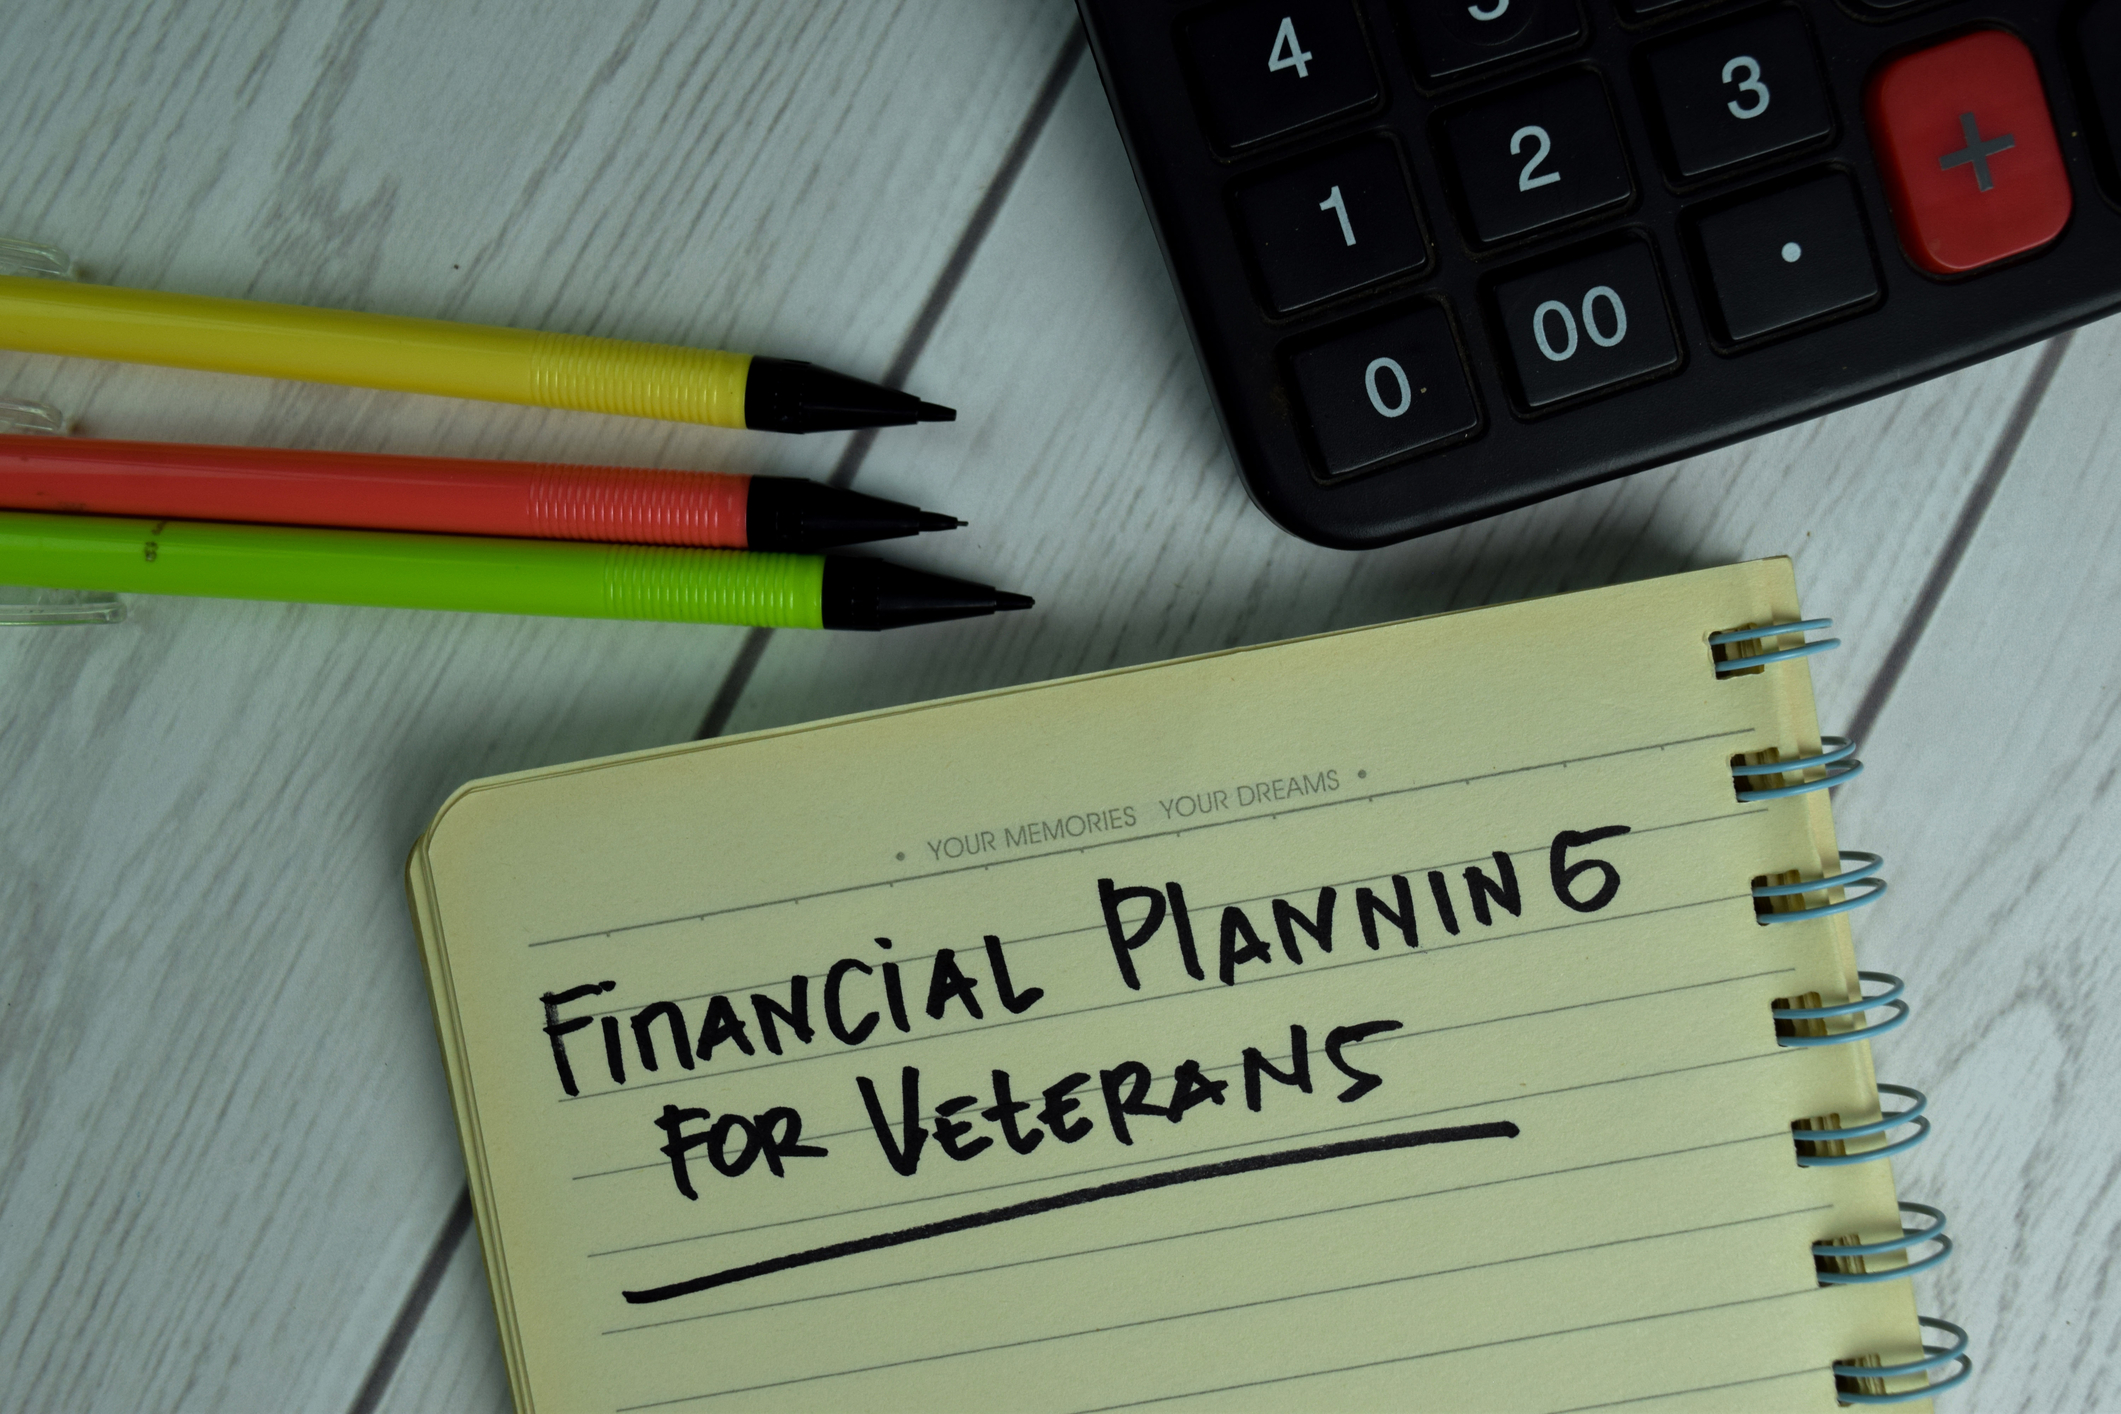 Notepad that says financial planning for veterans on table with calculator and three pencils Transition to a Tech Workforce